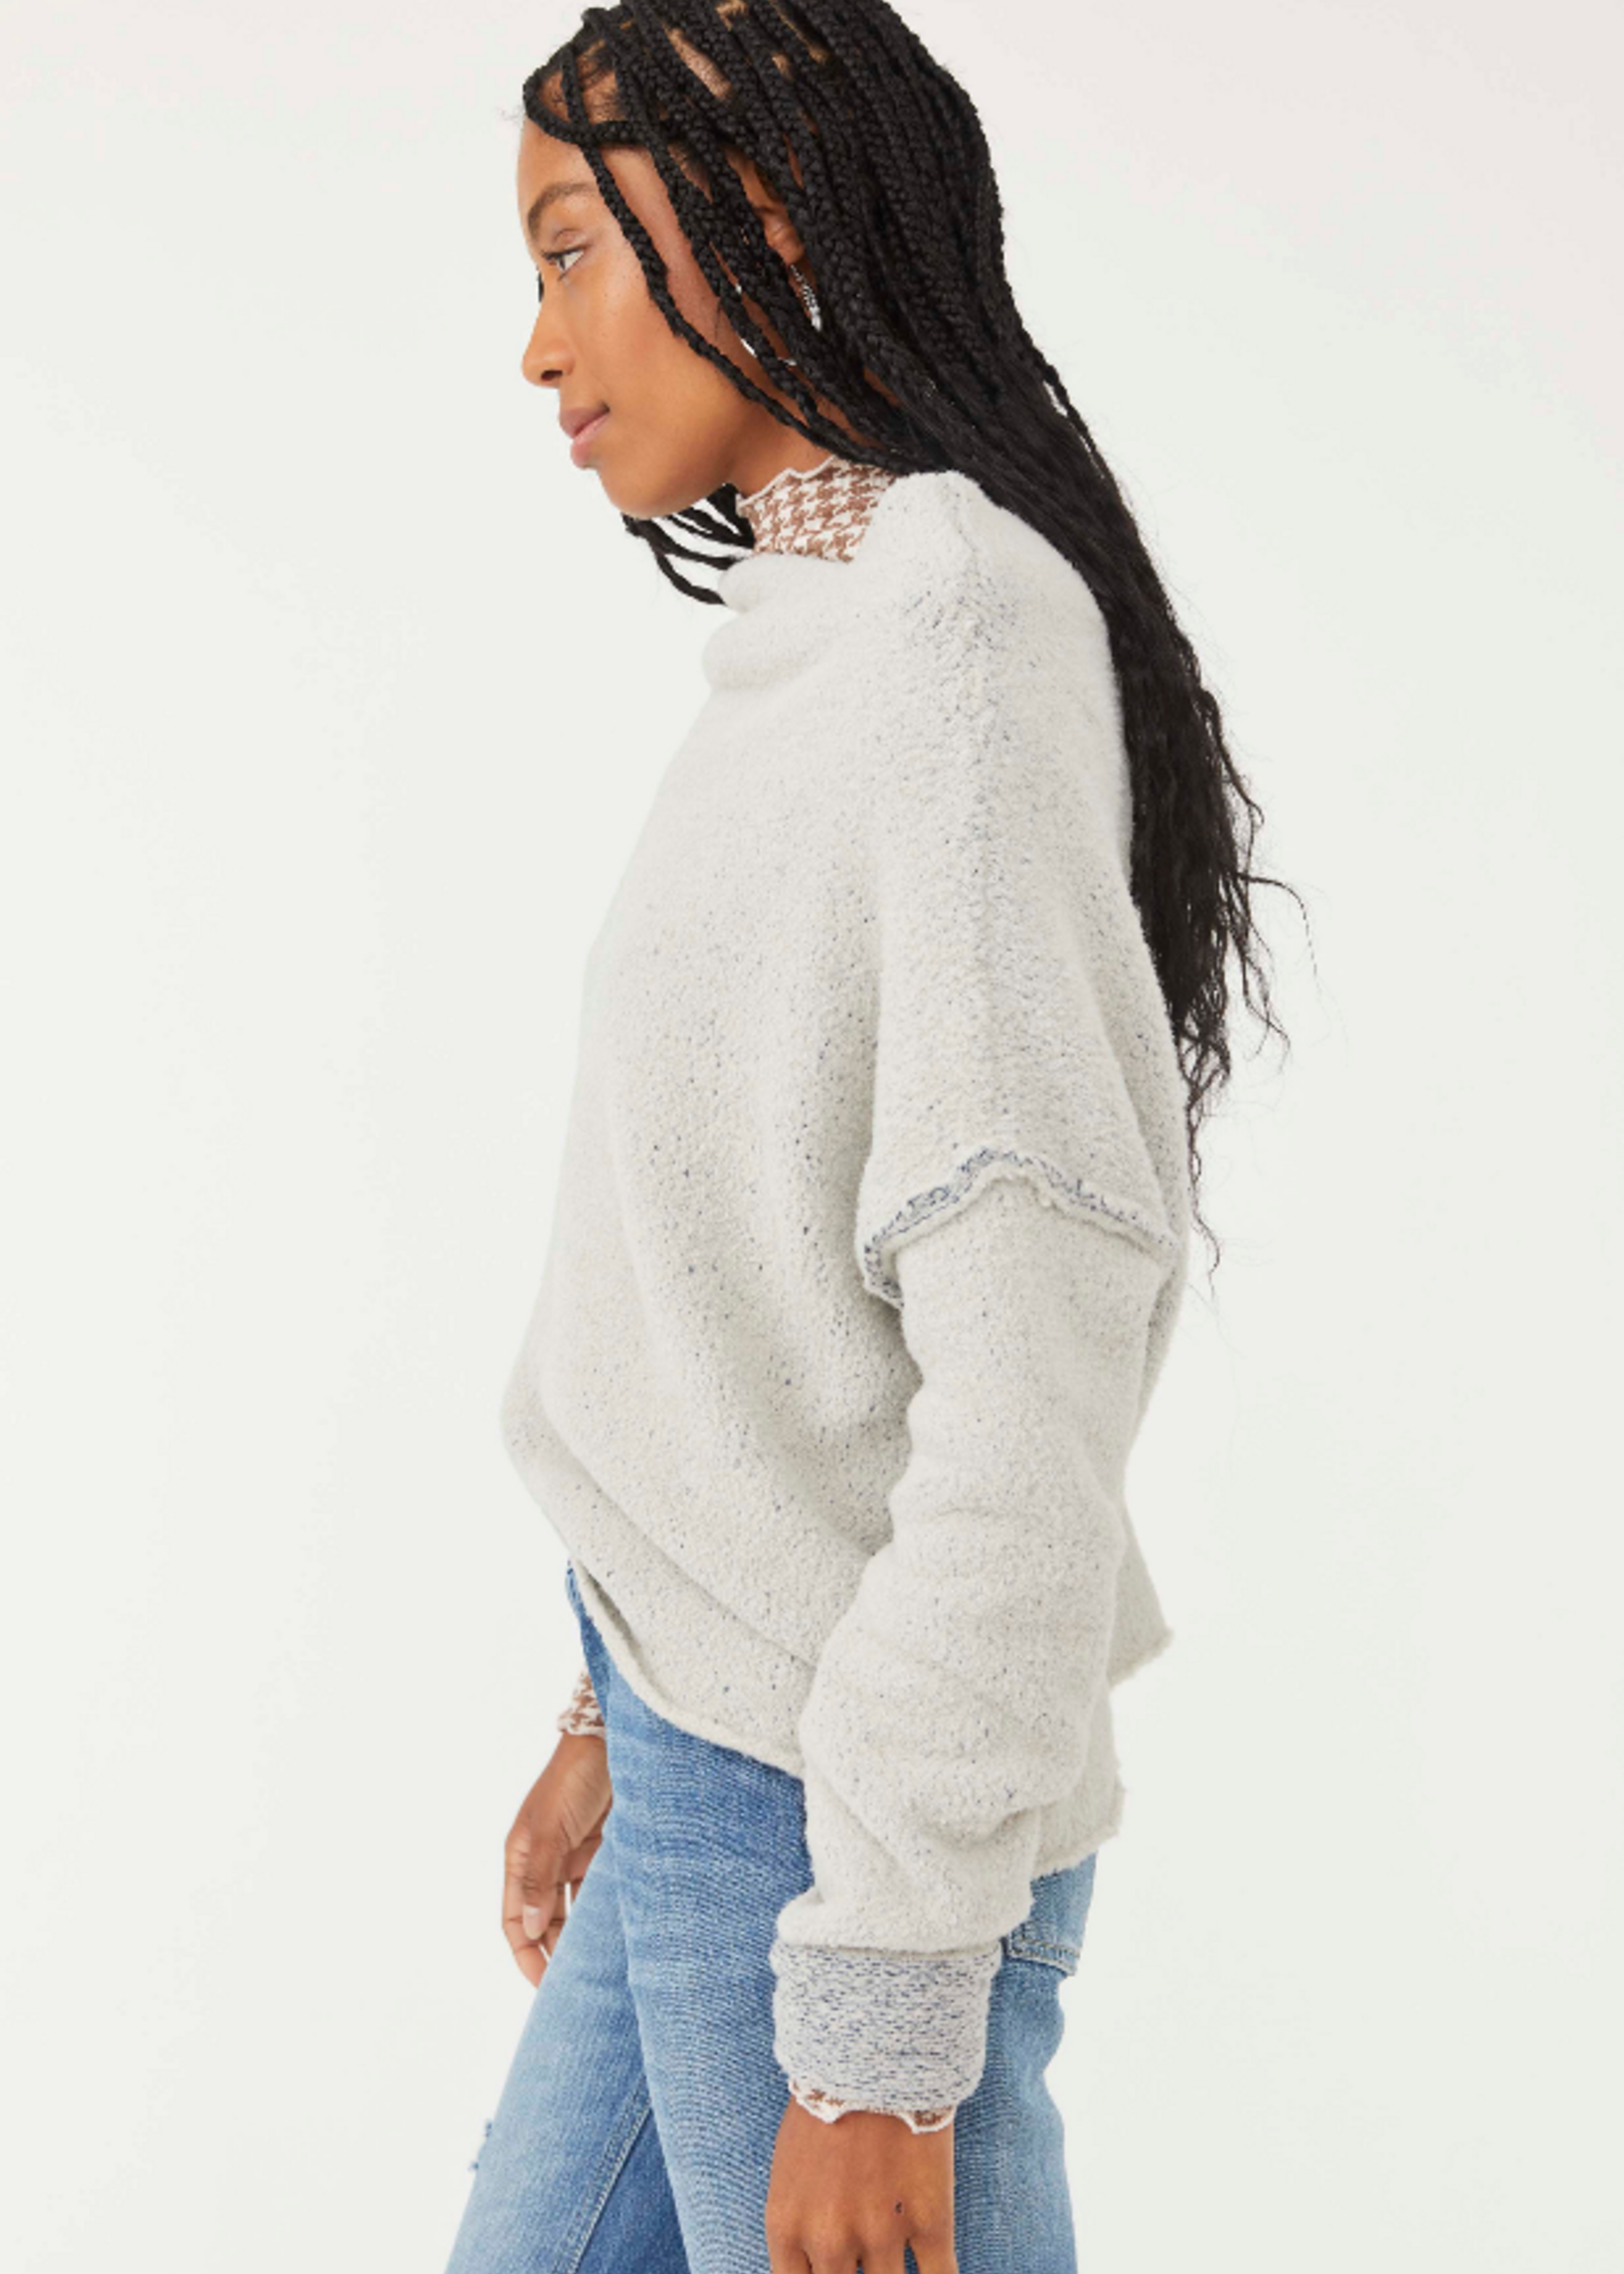 Free People  San Vincente Pullover - Silver Sapphire